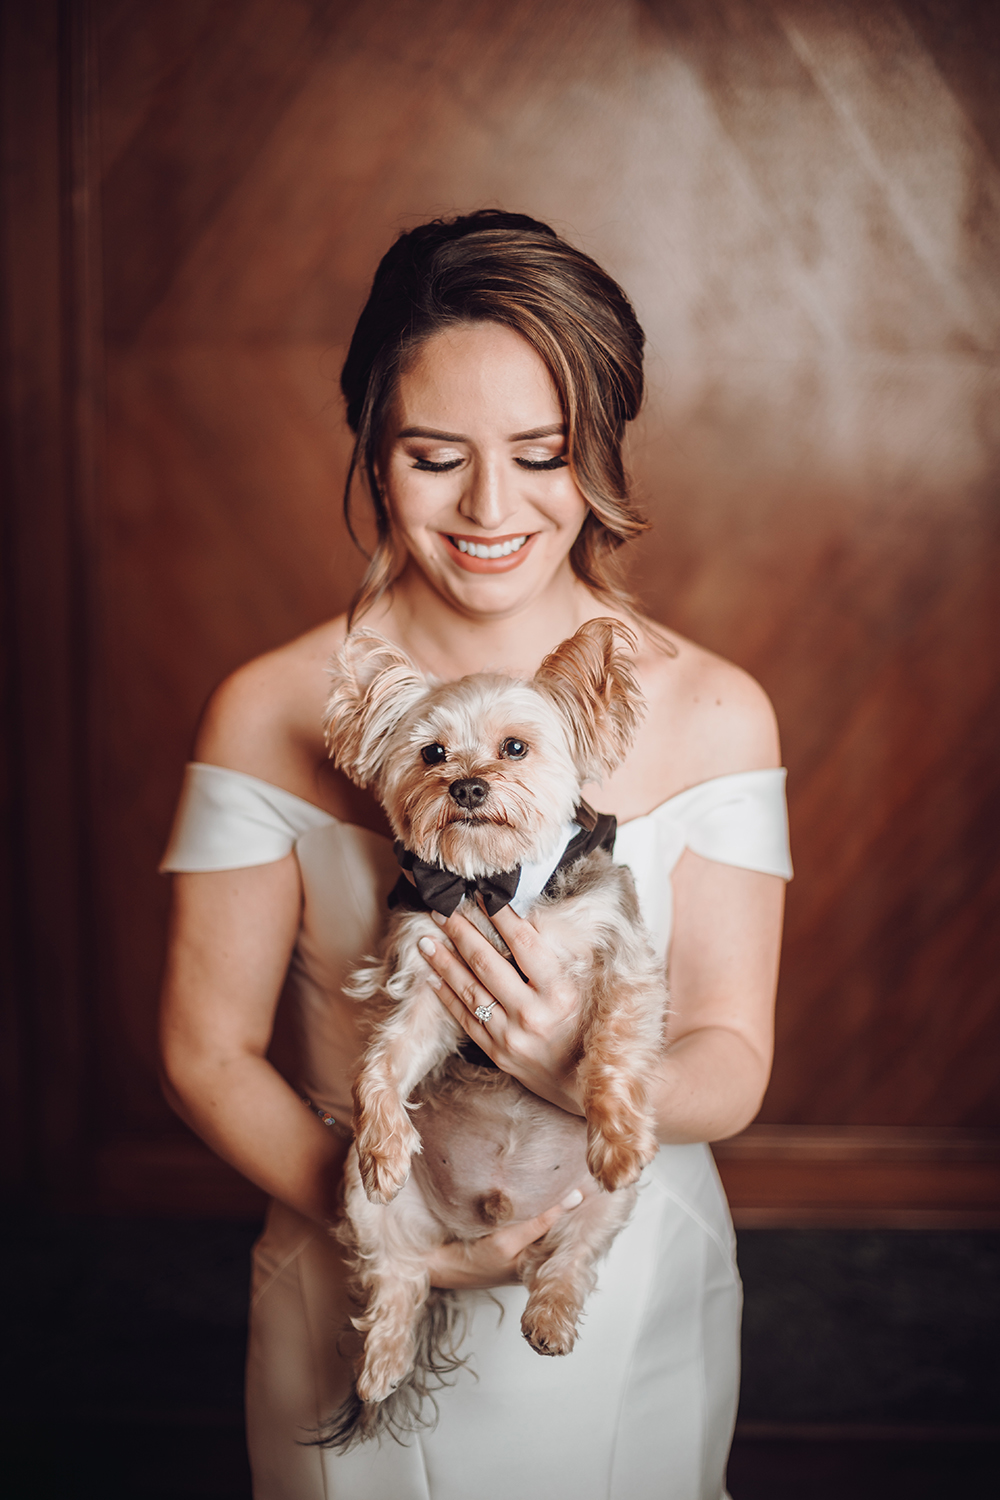 bridal portrait - pets in weddings